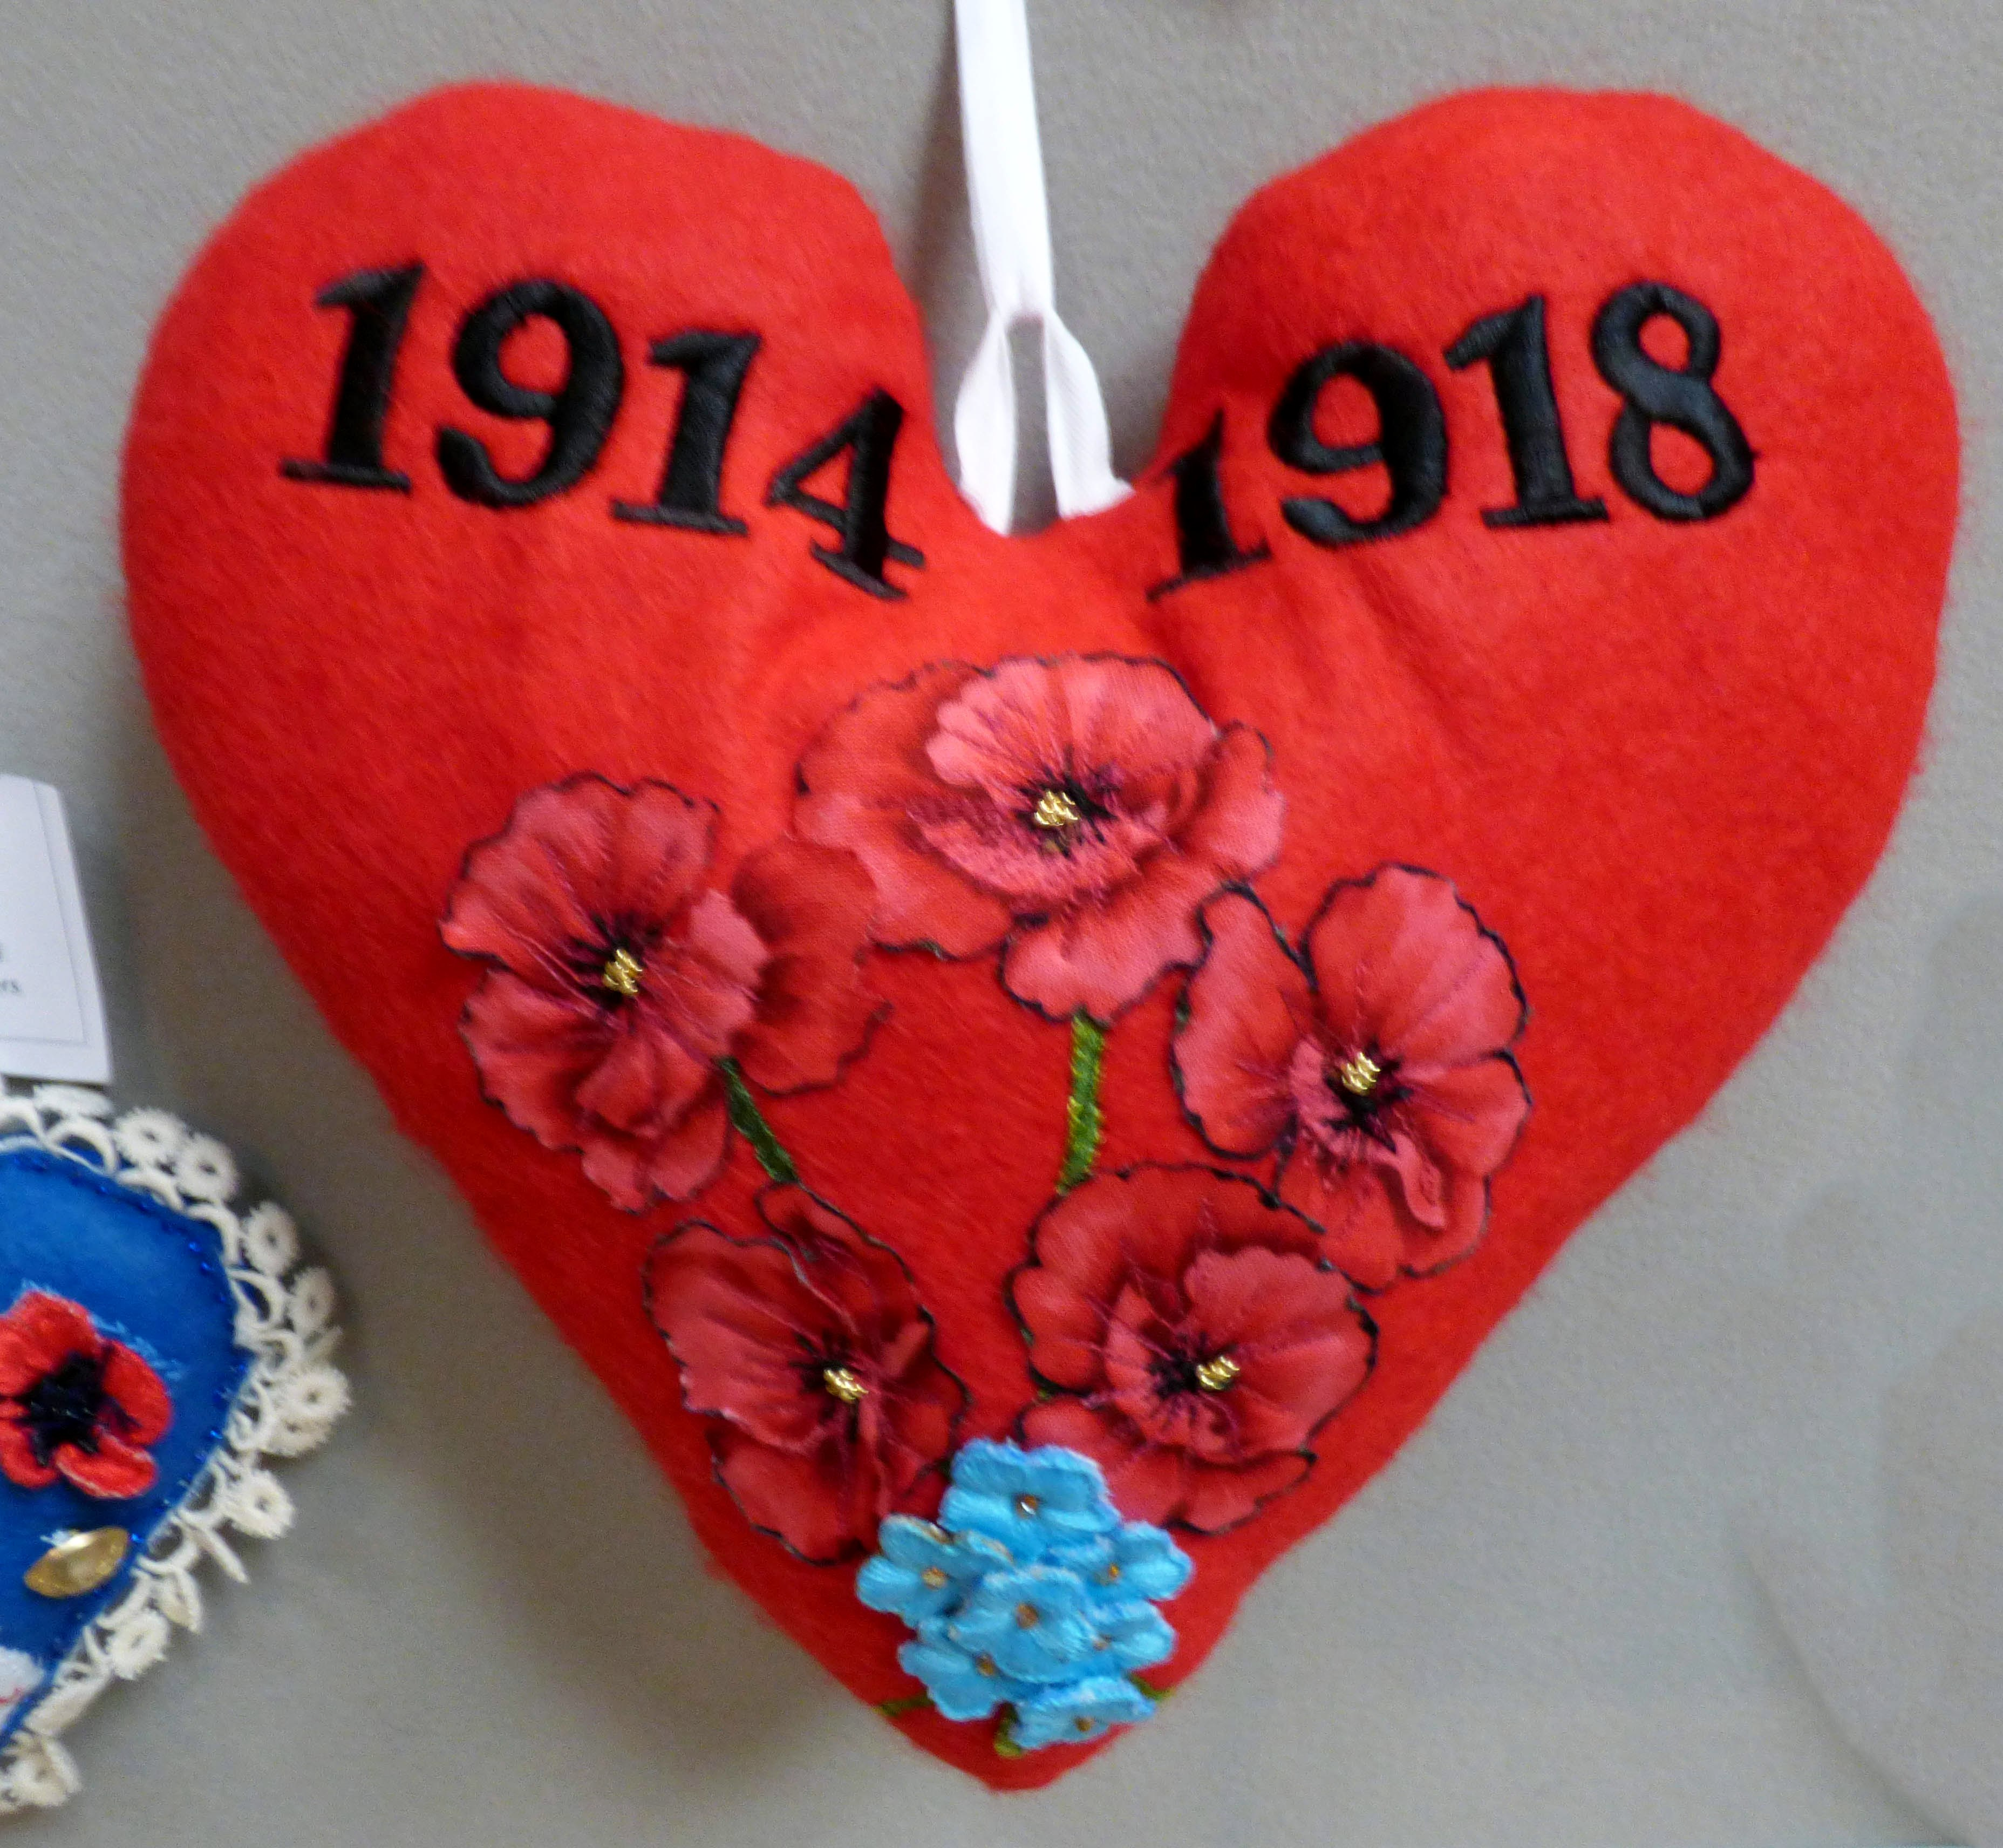 FORGET ME NOT by Sylvia Owen, to remember World War1 1914-1918, 100 Hearts exhibition, Liverpool Cathedral, Sept 2018